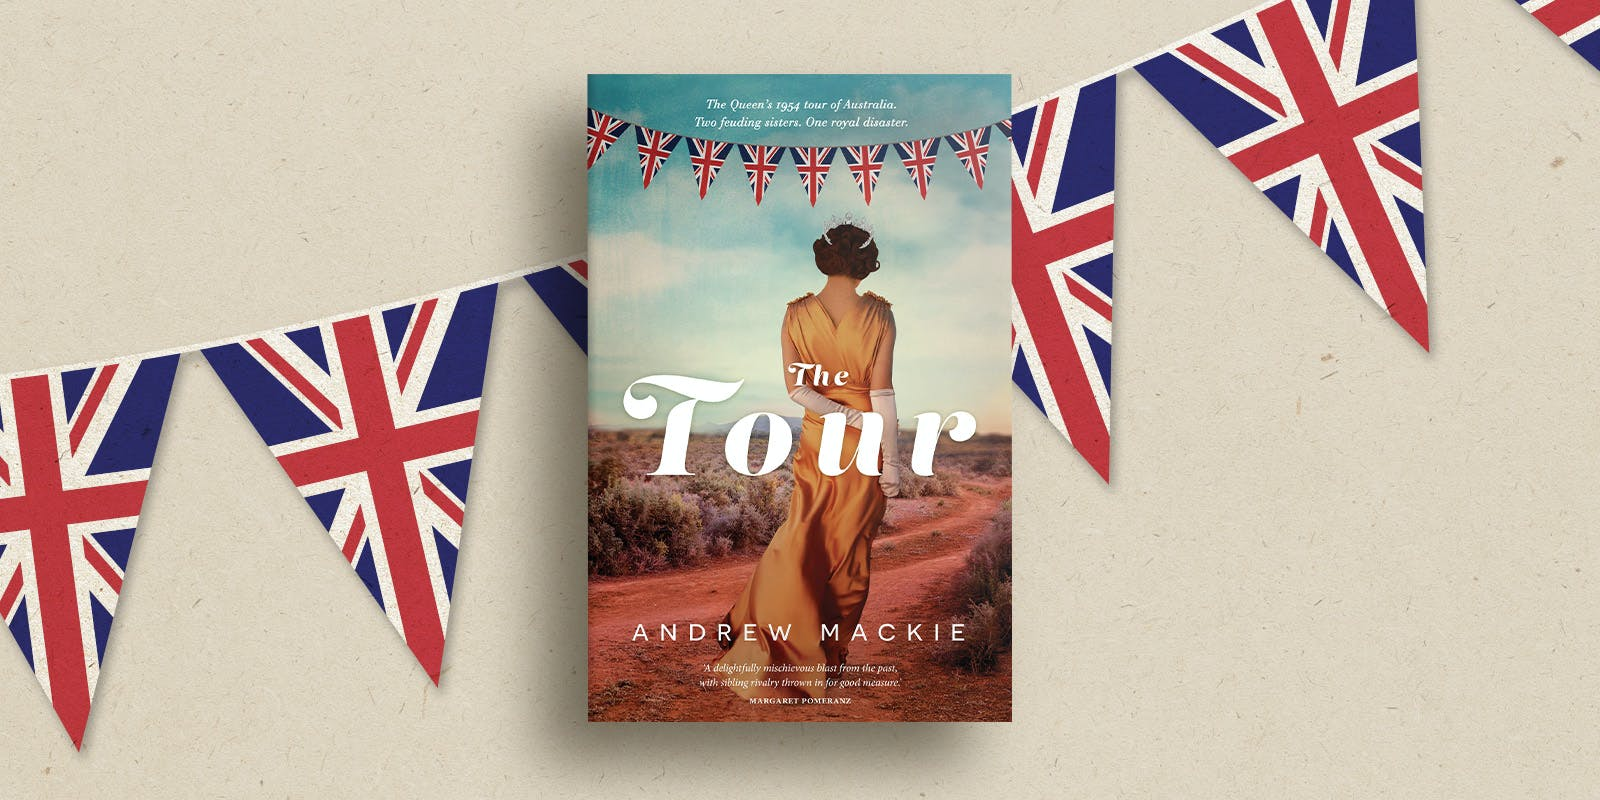 Andrew Mackie Q&A